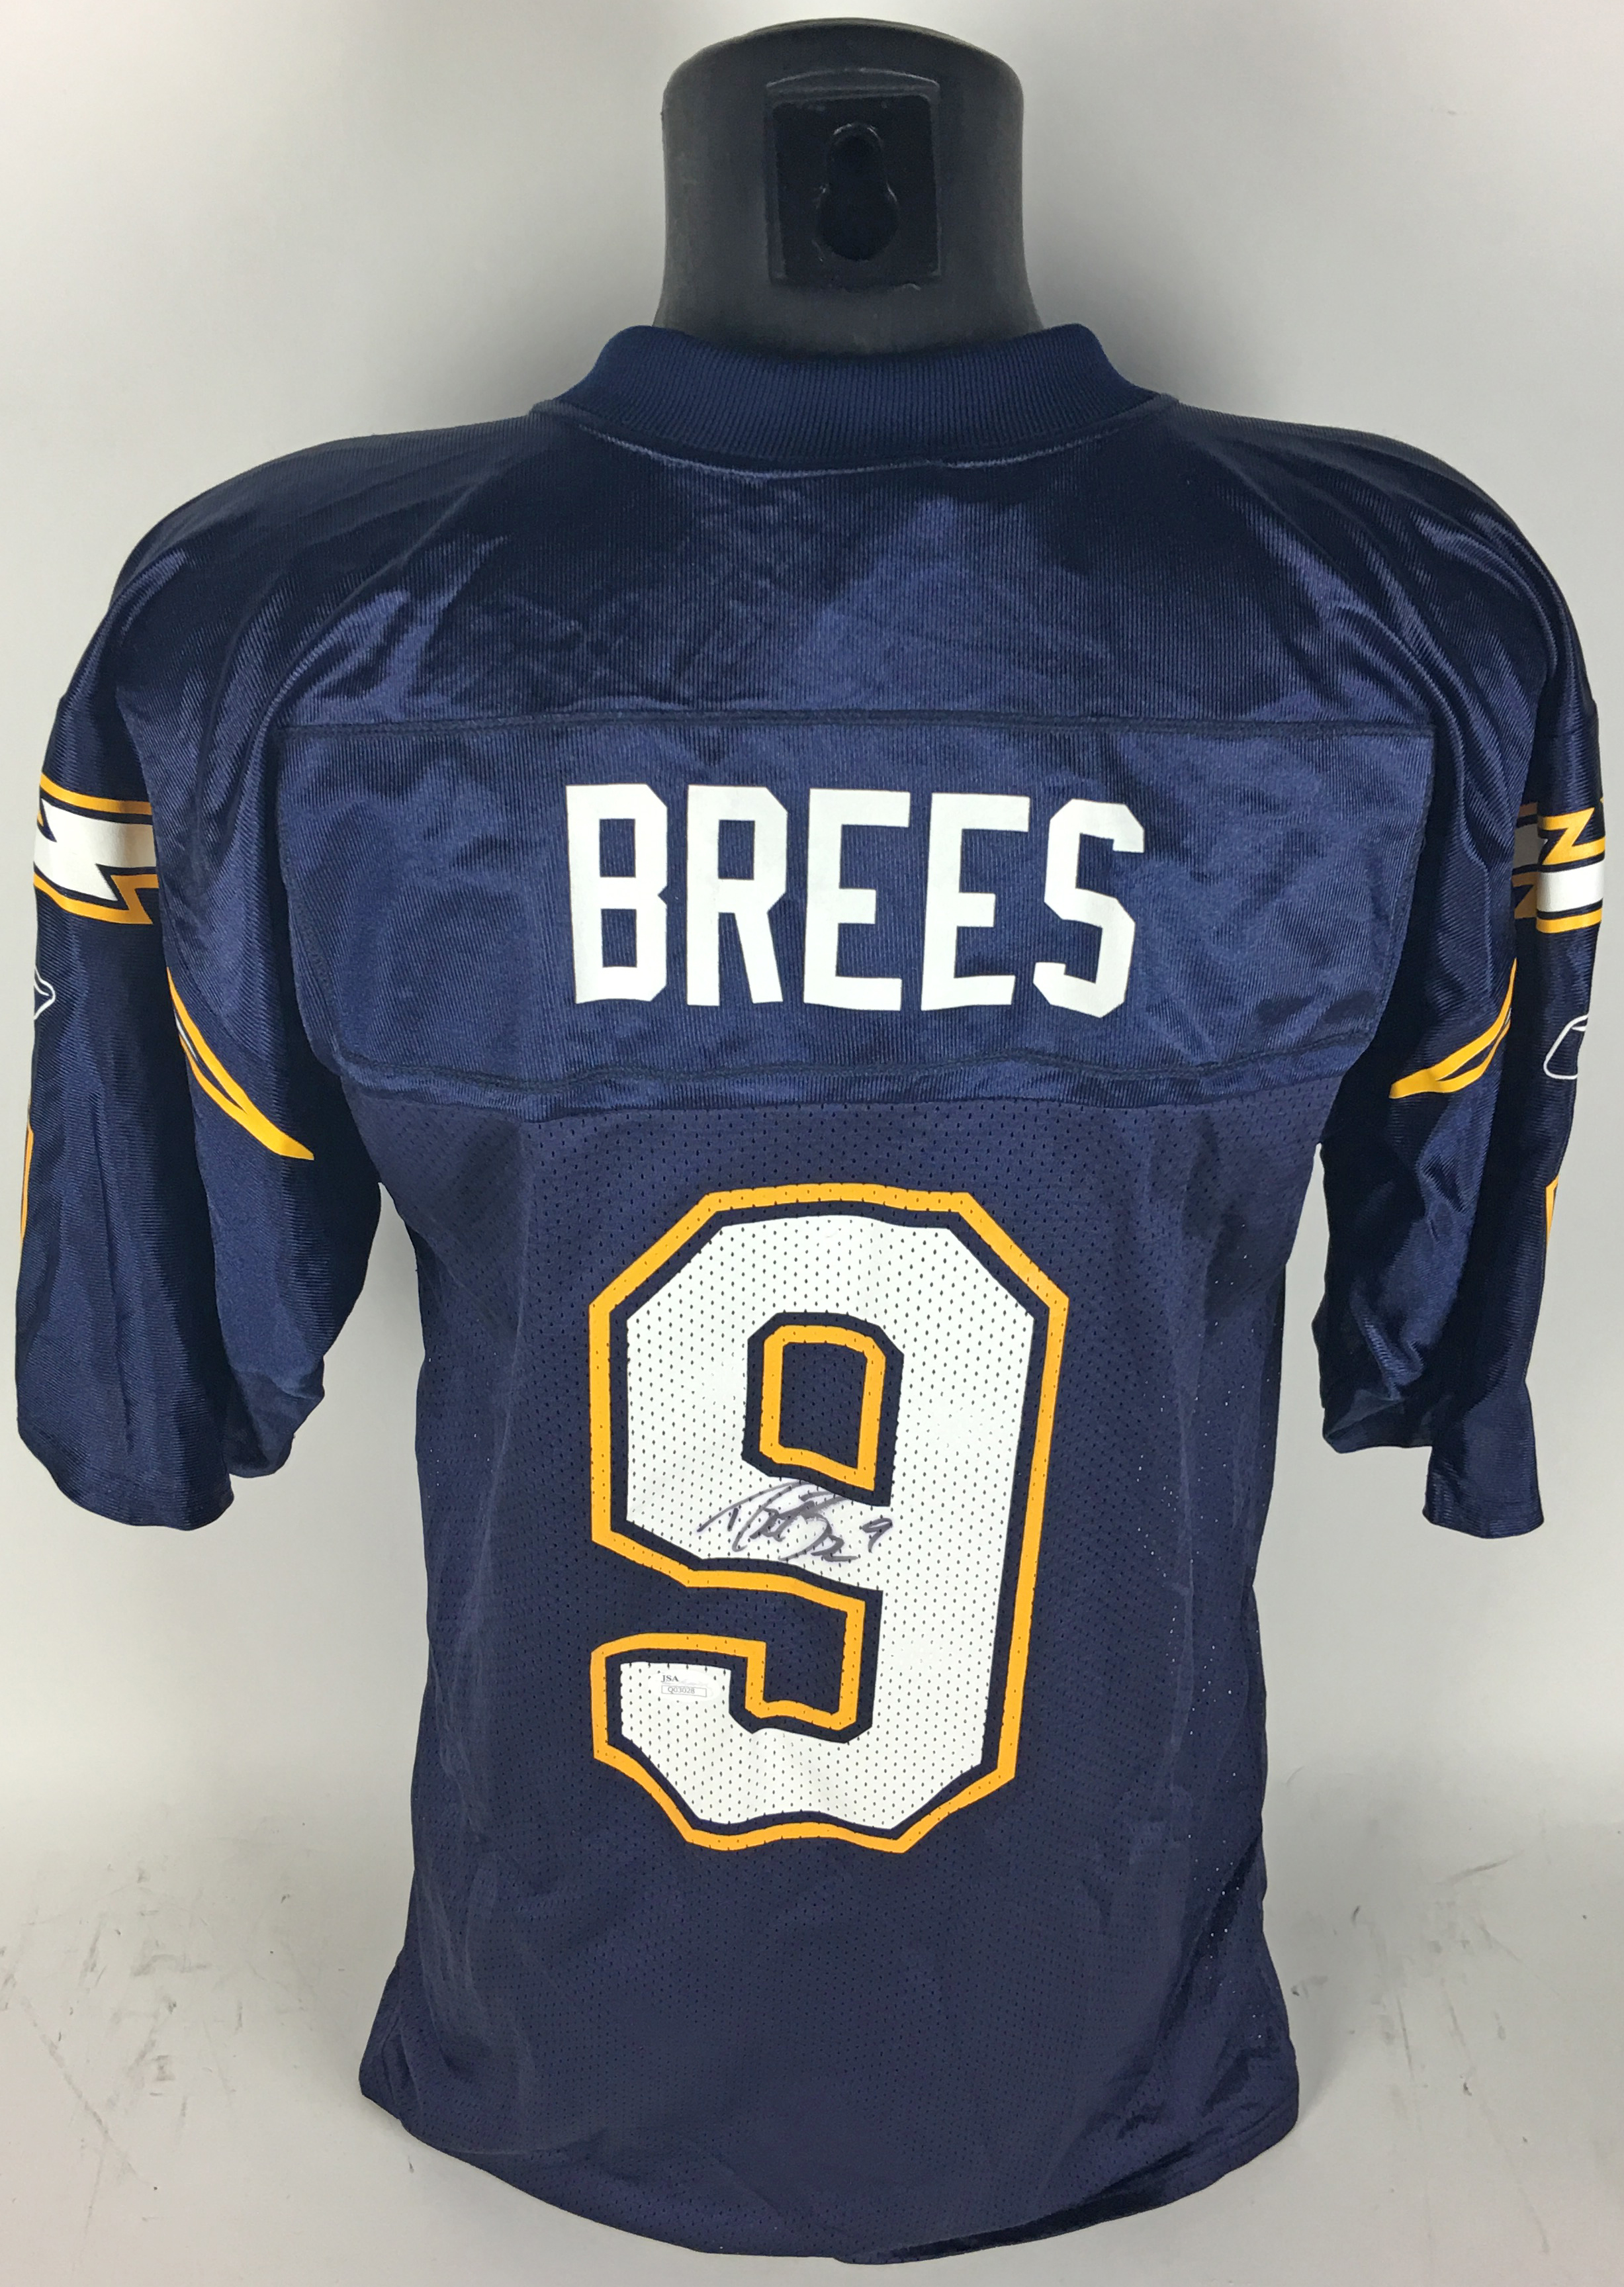 uk availability 731b8 3cbca Lot Detail - Drew Brees Rookie-Era Signed Chargers Jersey (JSA)